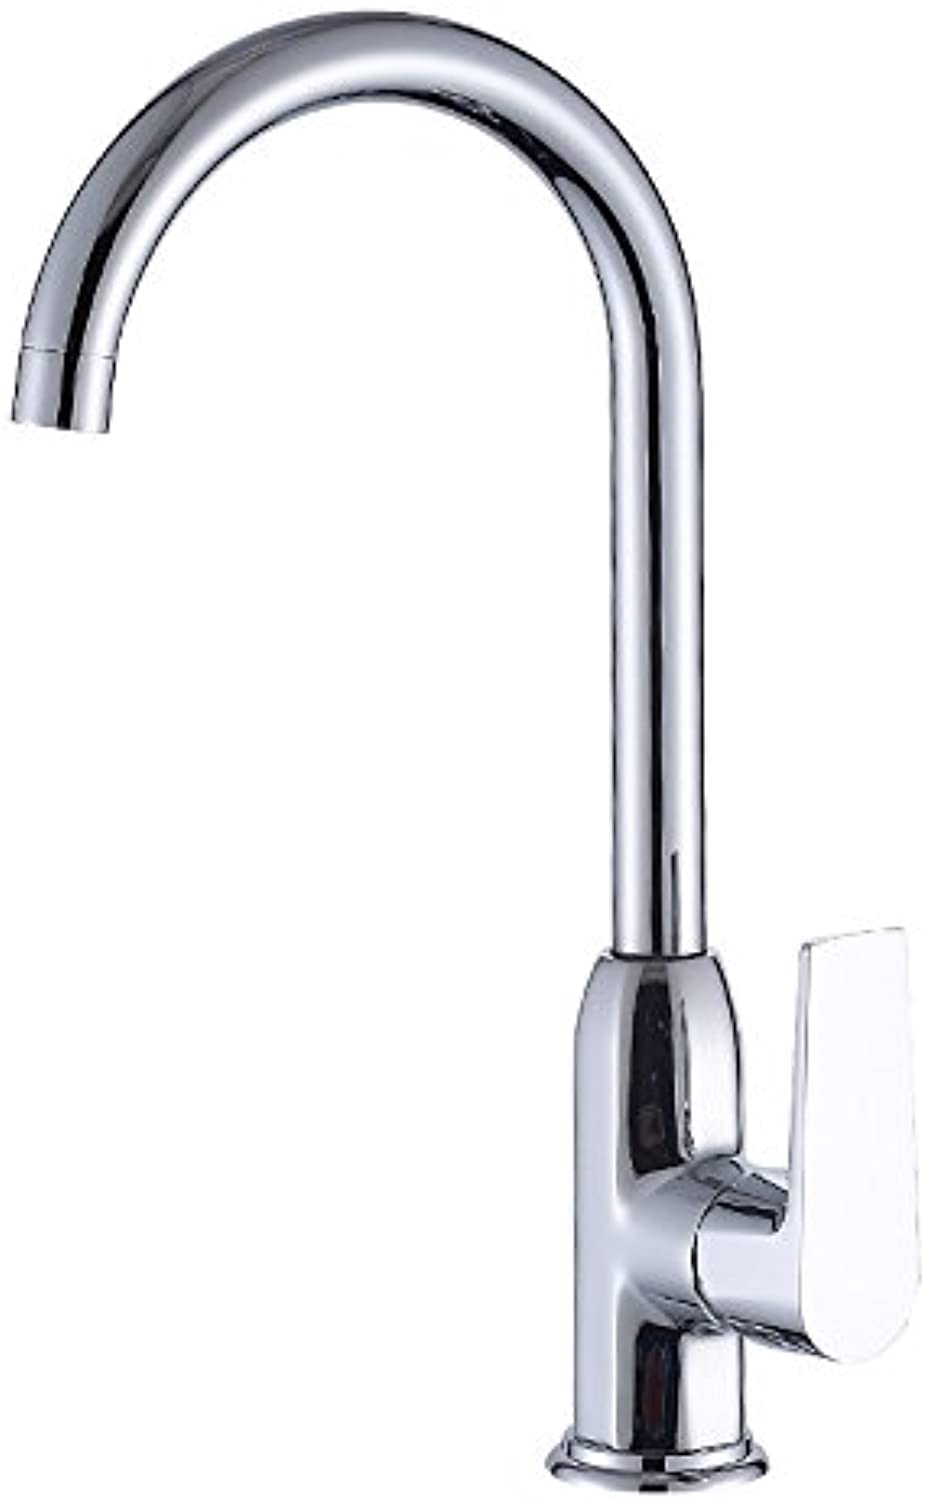 Bathroom Sink Basin Lever Mixer Tap Kitchen Faucet Kitchen Faucet Dishwasher Faucet Cold and Hot Water Tank Mixing Valve Faucet Personality